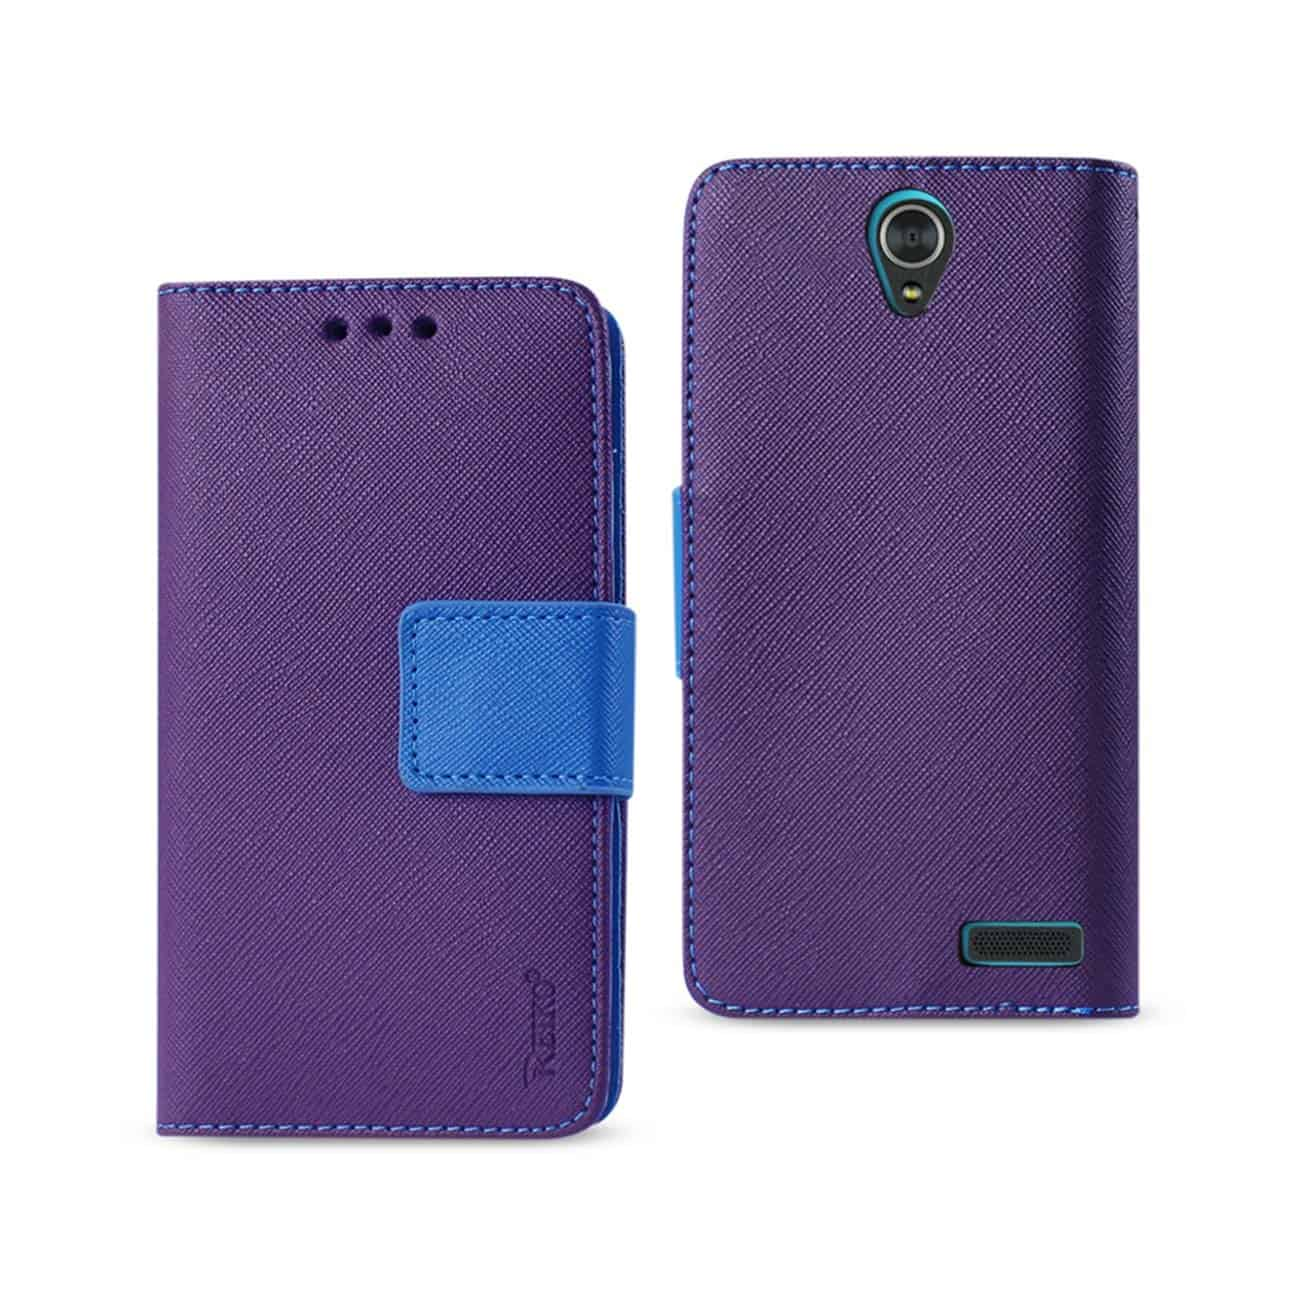 ZTE GRAND X3 3-IN-1 WALLET CASE IN PURPLE